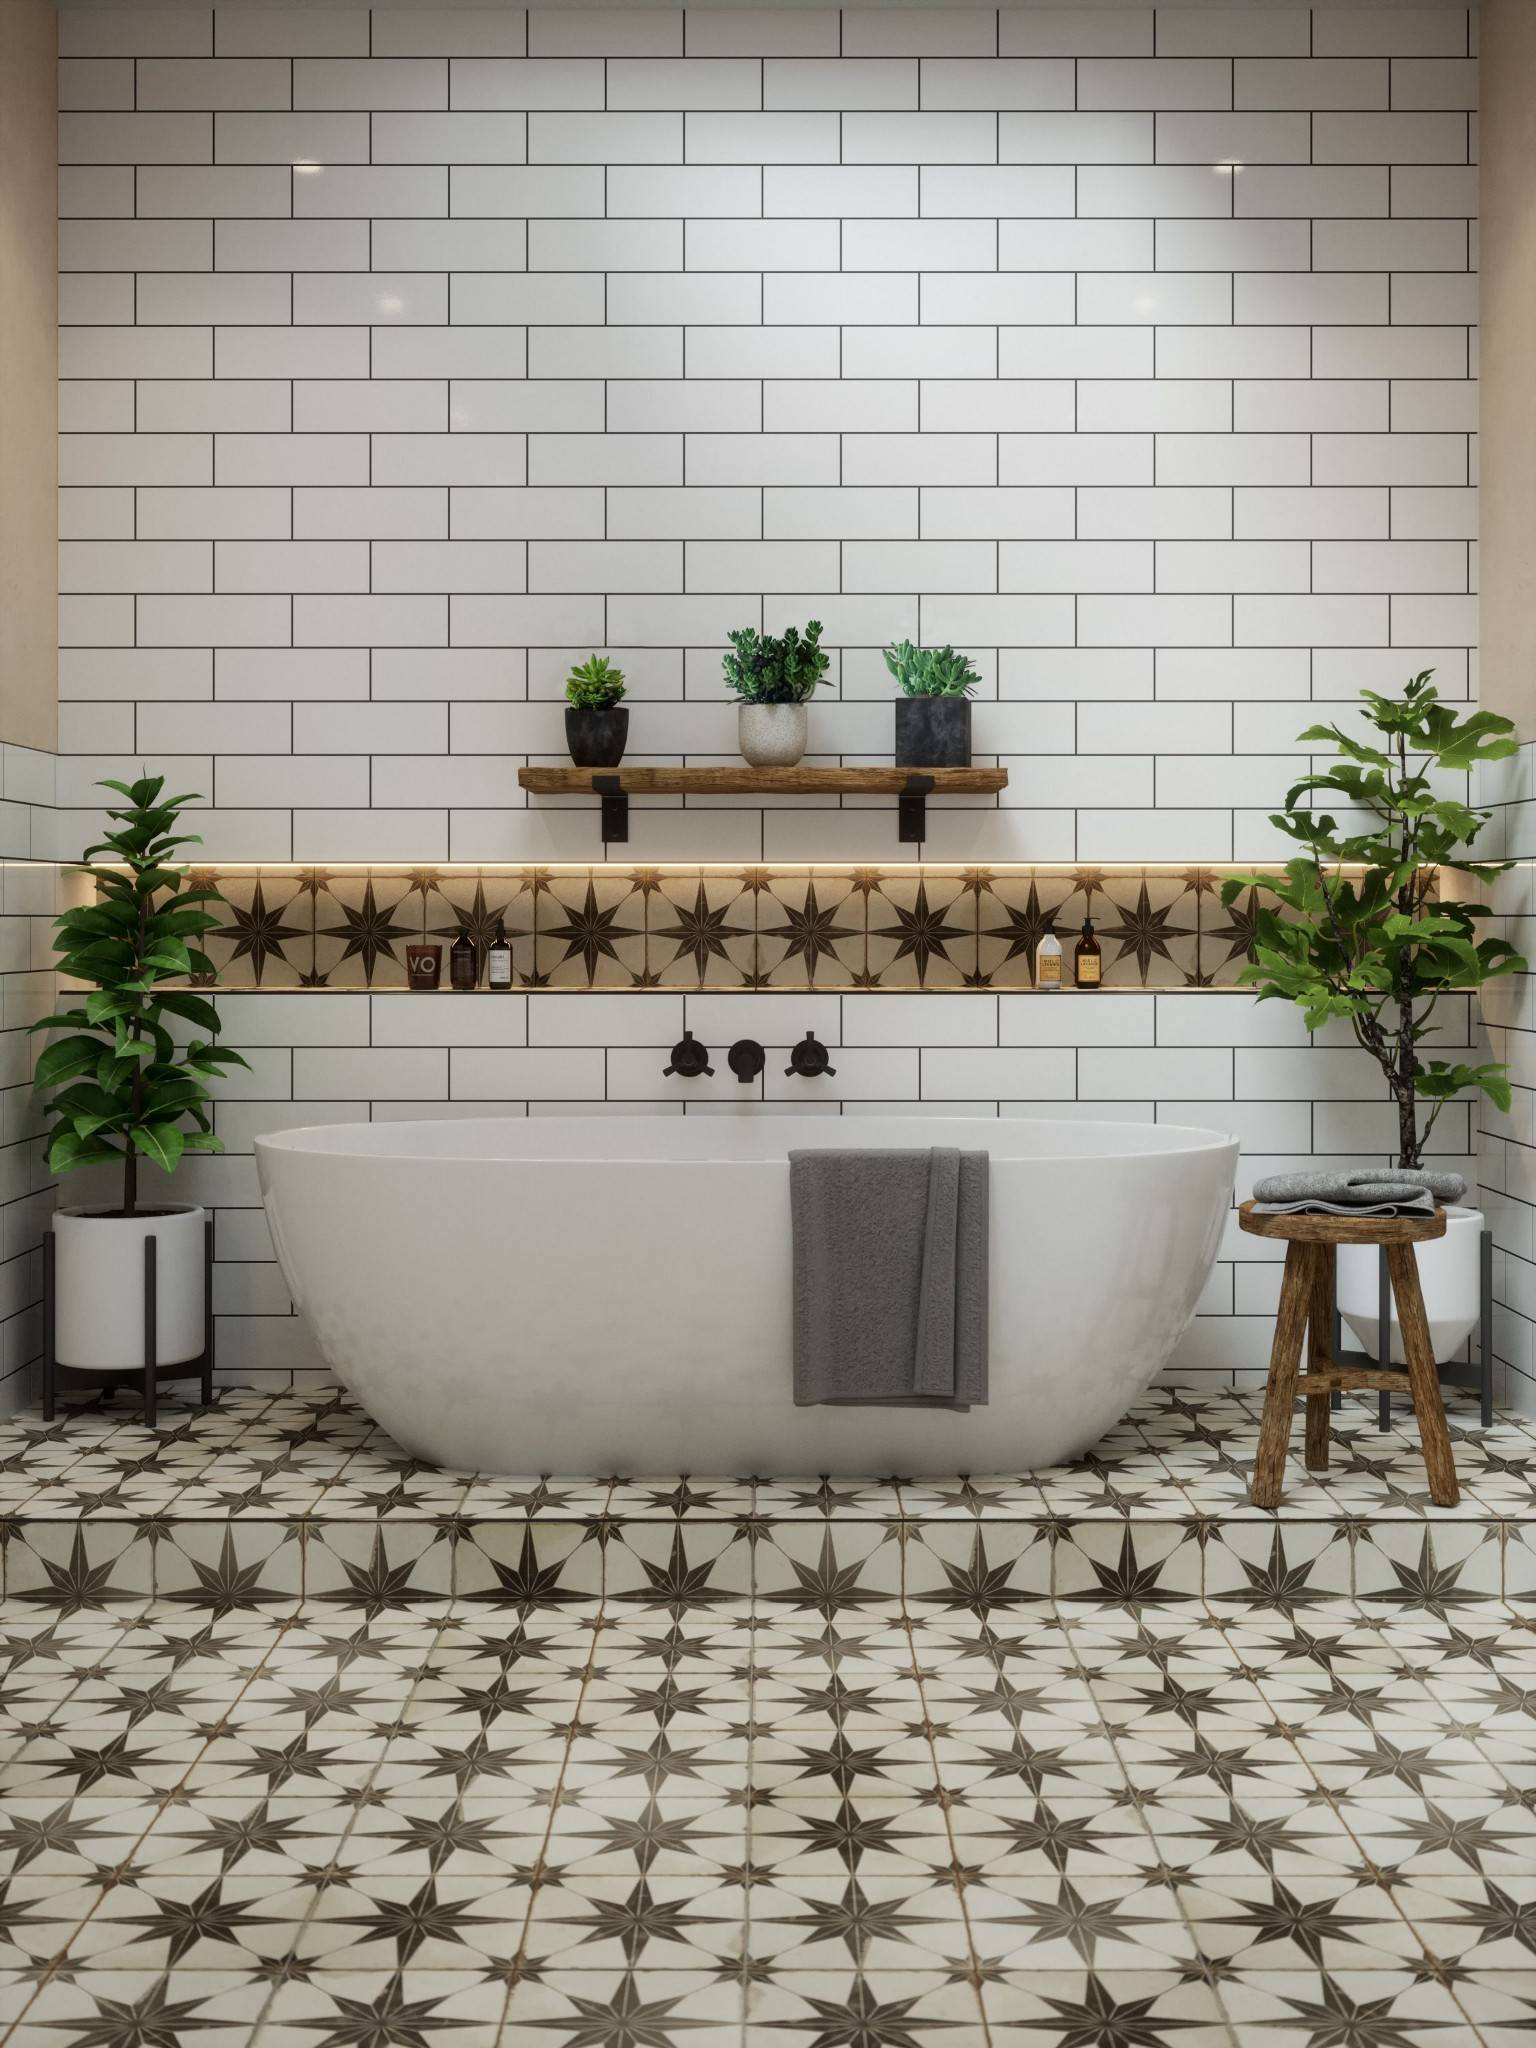 Tiled floor and walls